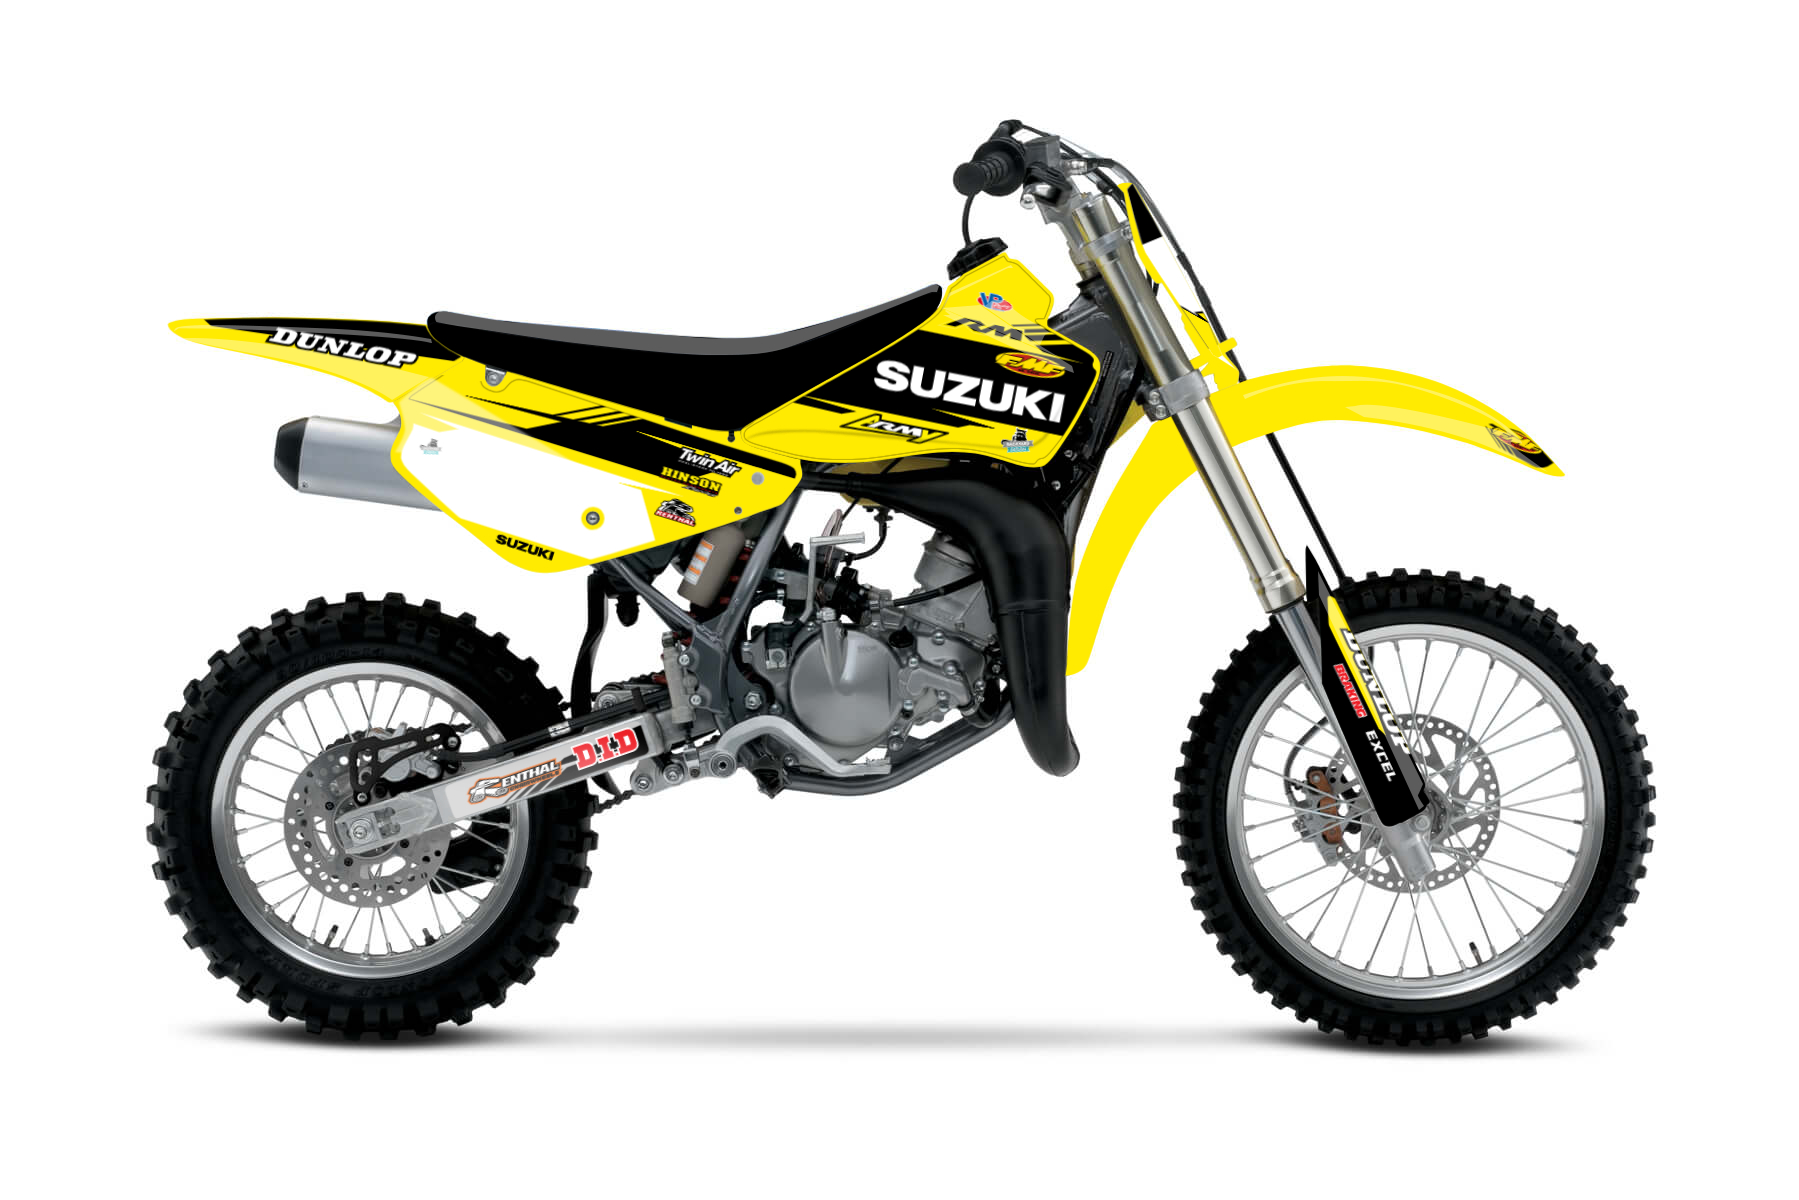 Suzuki RM85 MX Graphic Kits  The RM85 is your best friend when it comes to gathering first experiences on the track. The bike is reliable and easy to control.